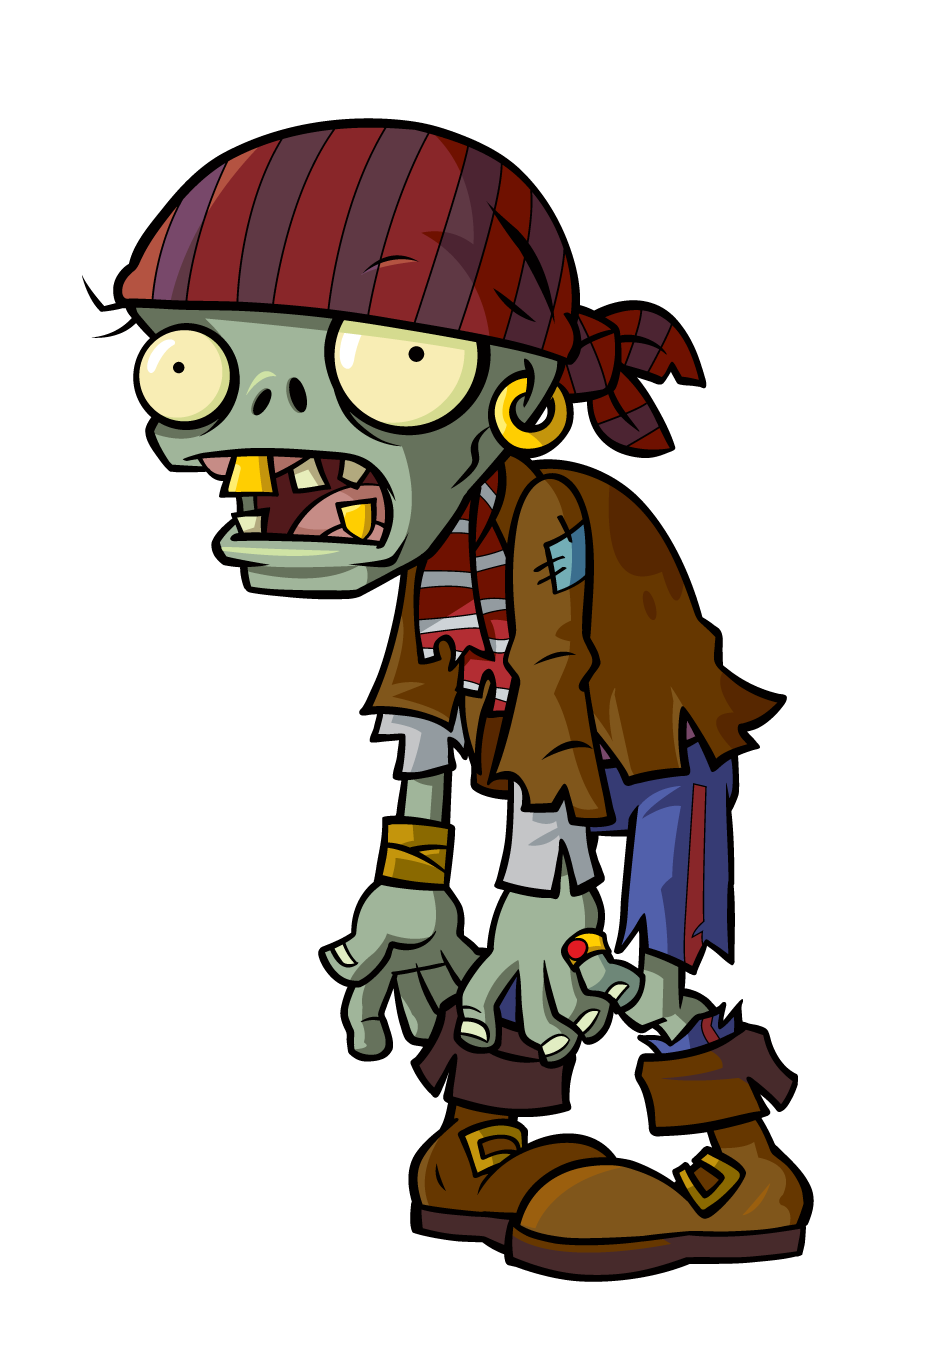 Plants vs zombies zombie characters png. It s about time